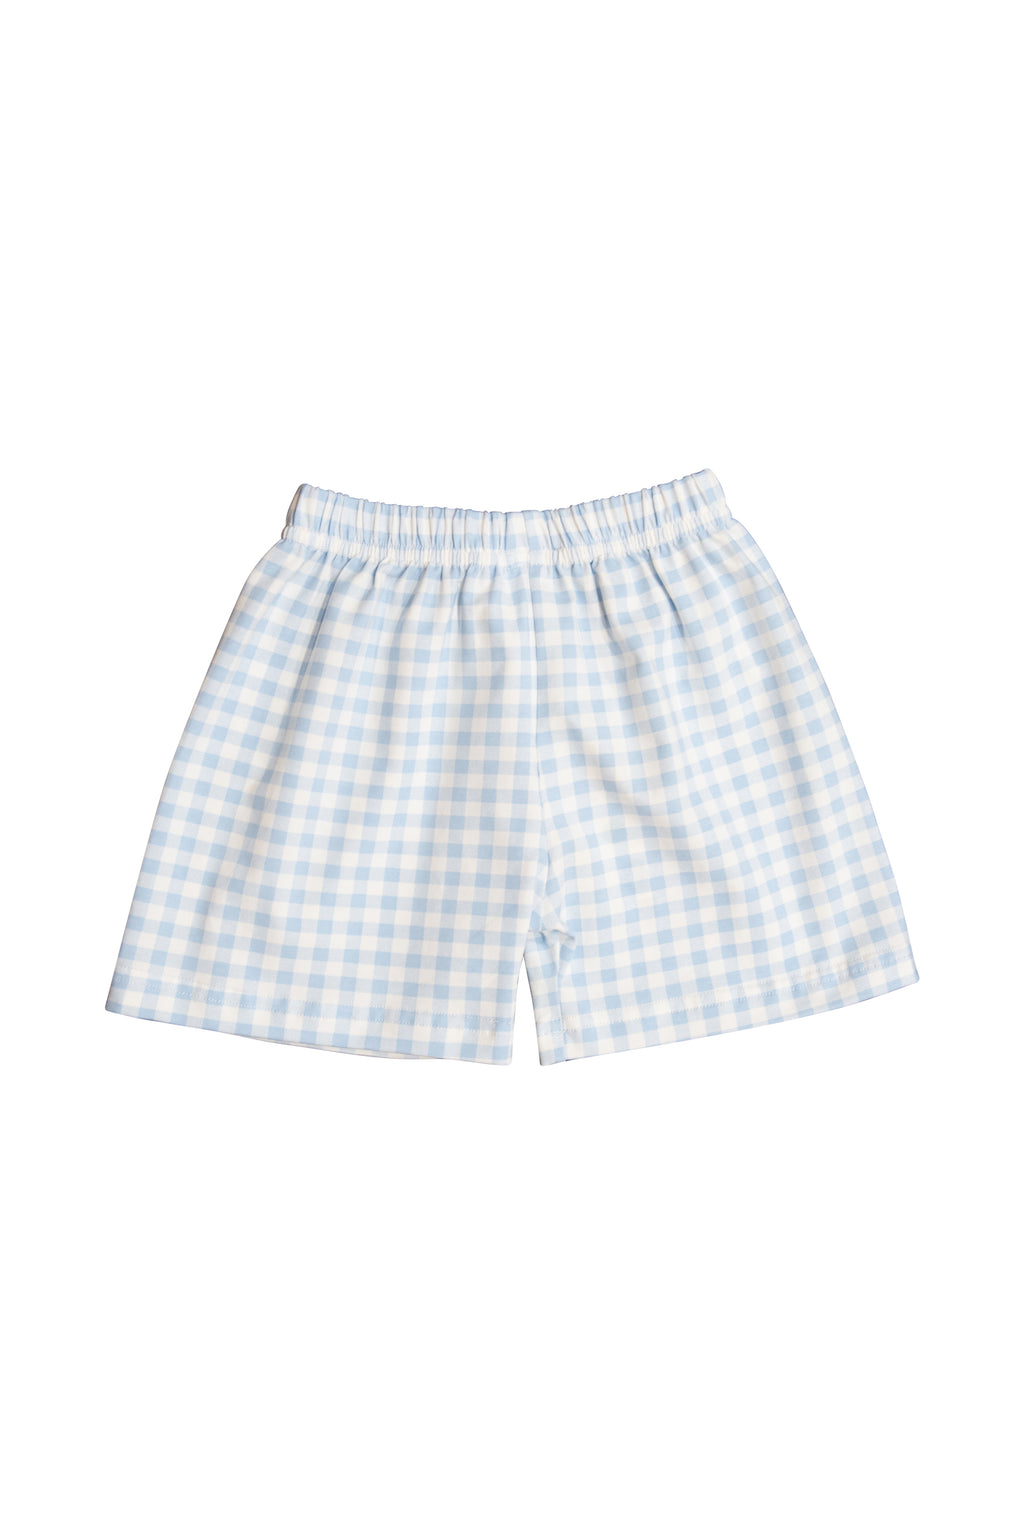 Boys Blue Gingham Shorts